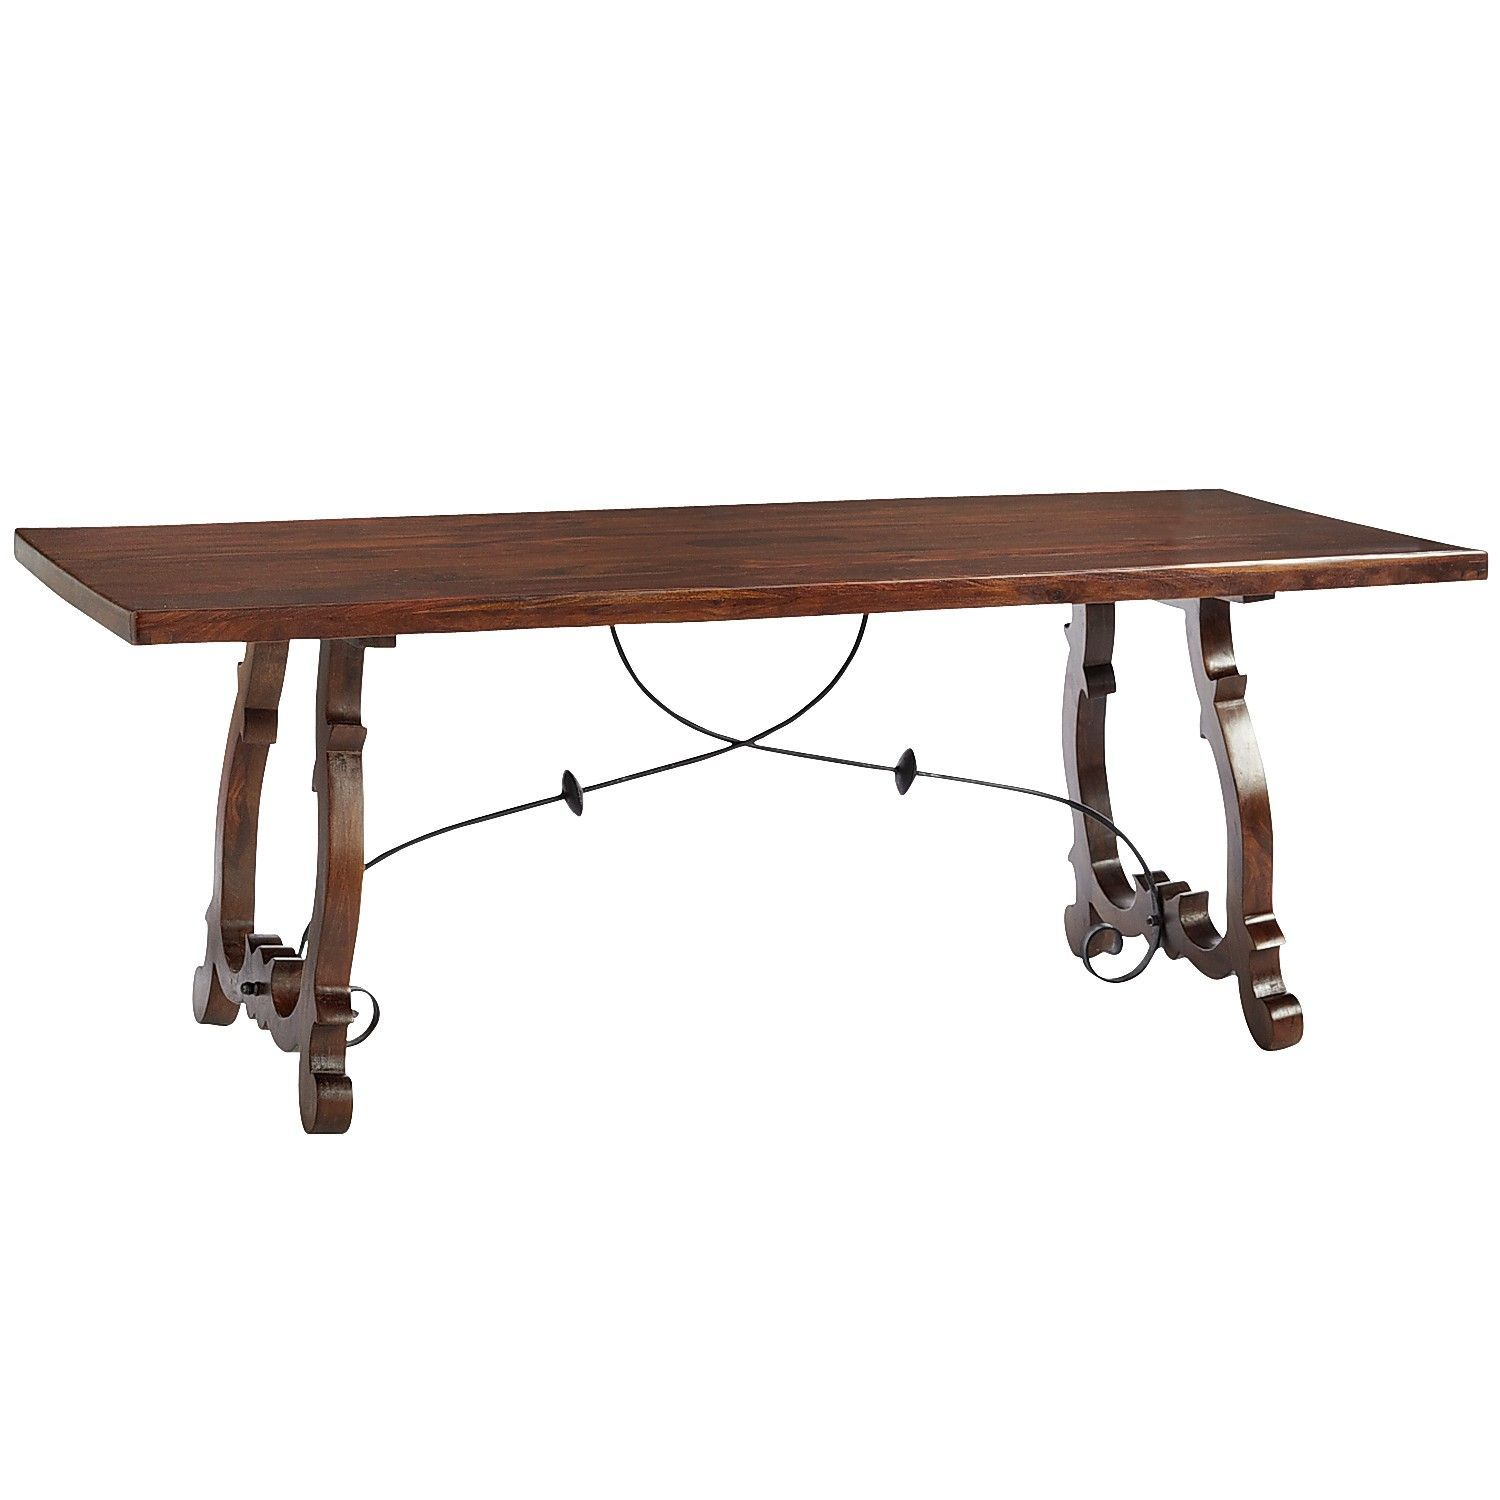 Pier 1 599 Indira Trestle Dining Table Brown I Love This